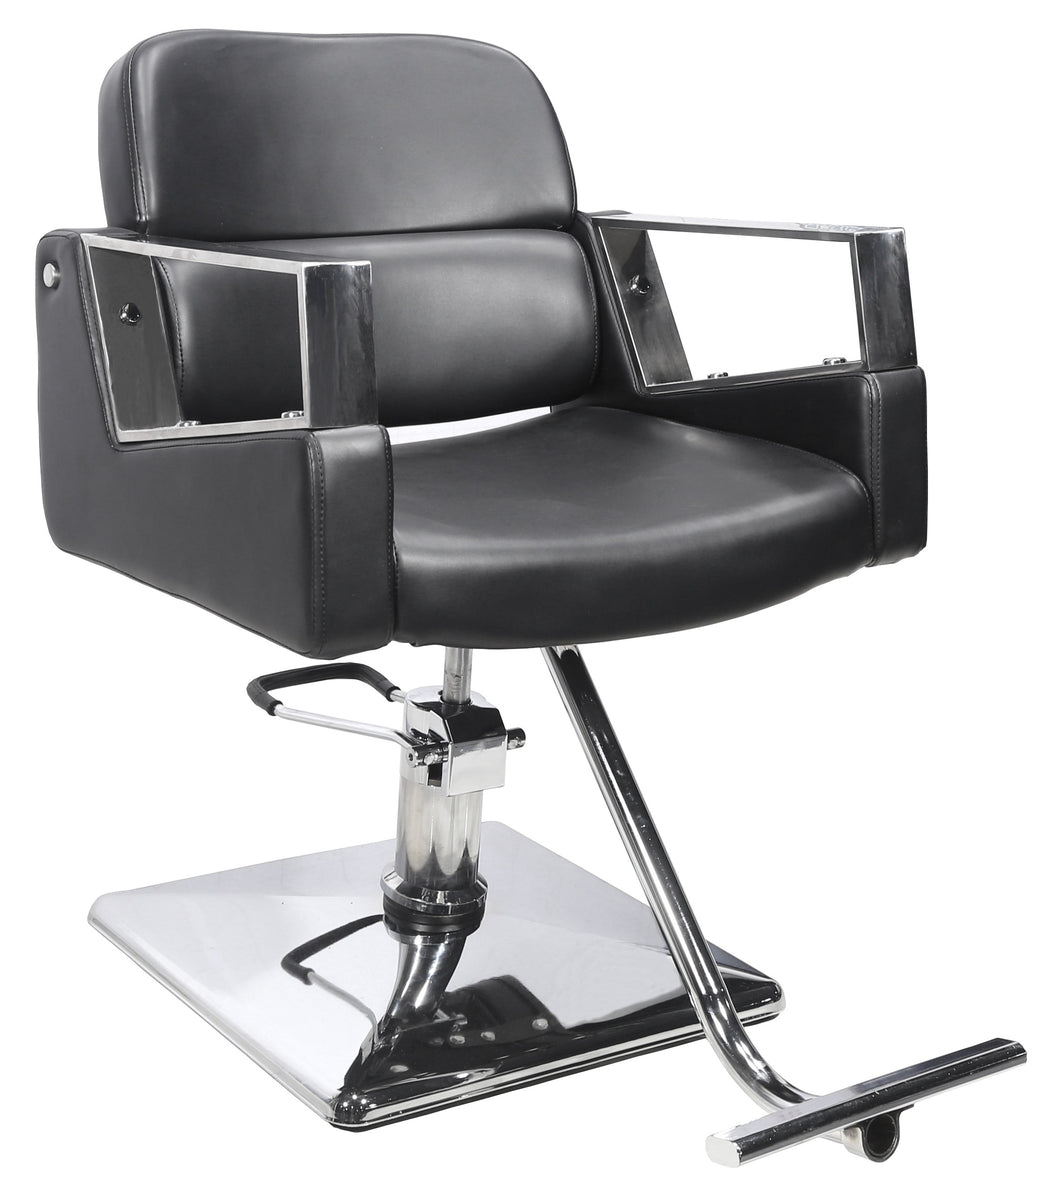 Model 642 Styling Chair With Modern Arm Rest With Extra Back Support